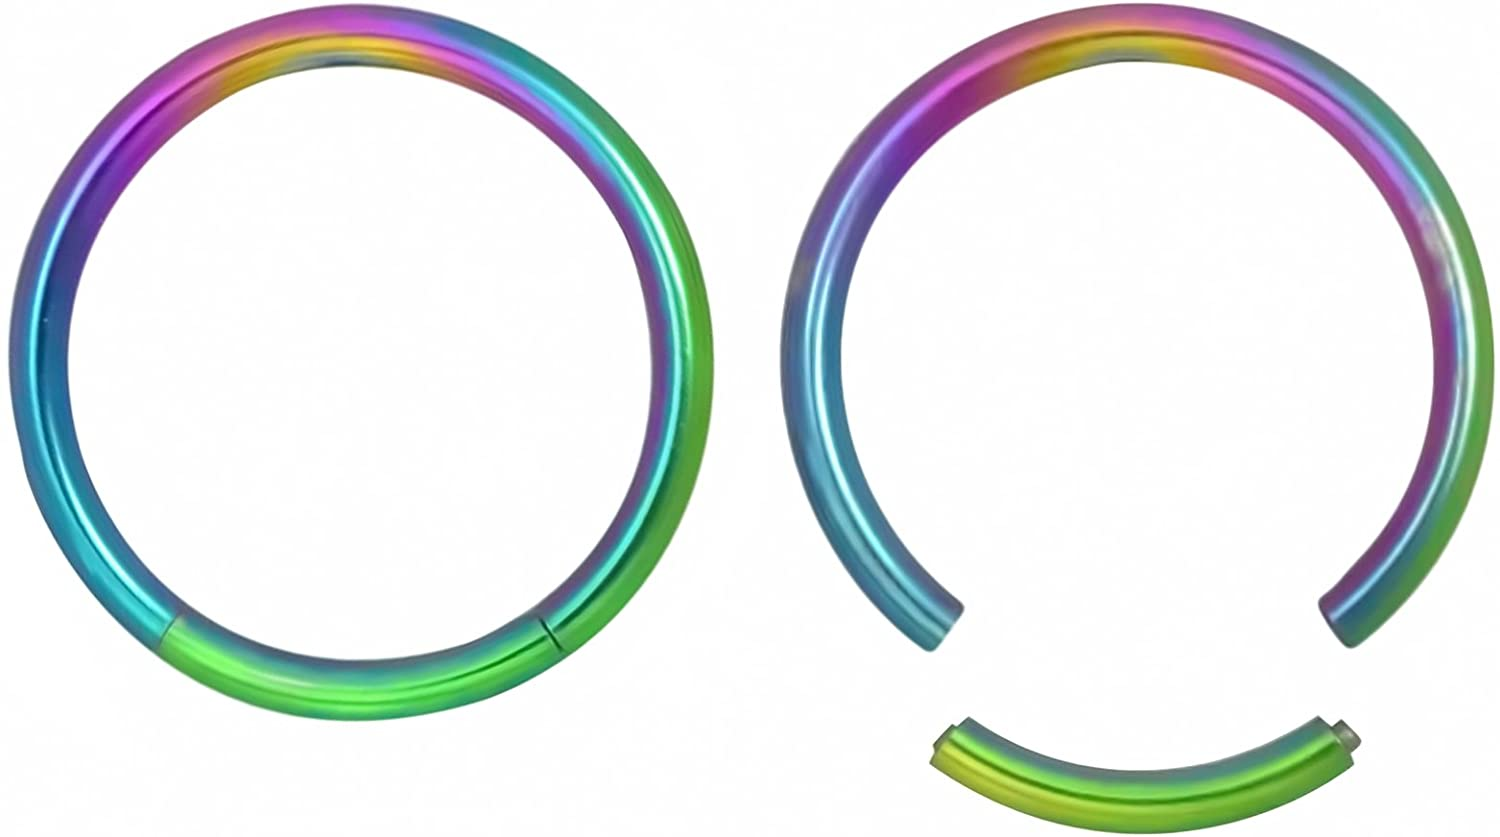 Set of 2: 16G 11 mm (7/16) Easy Use 316L Surgical Steel Titanium Rainbow IP Segment Hoop Ring kcchstar the eye of god high quality 316 titanium steel necklaces golden blue